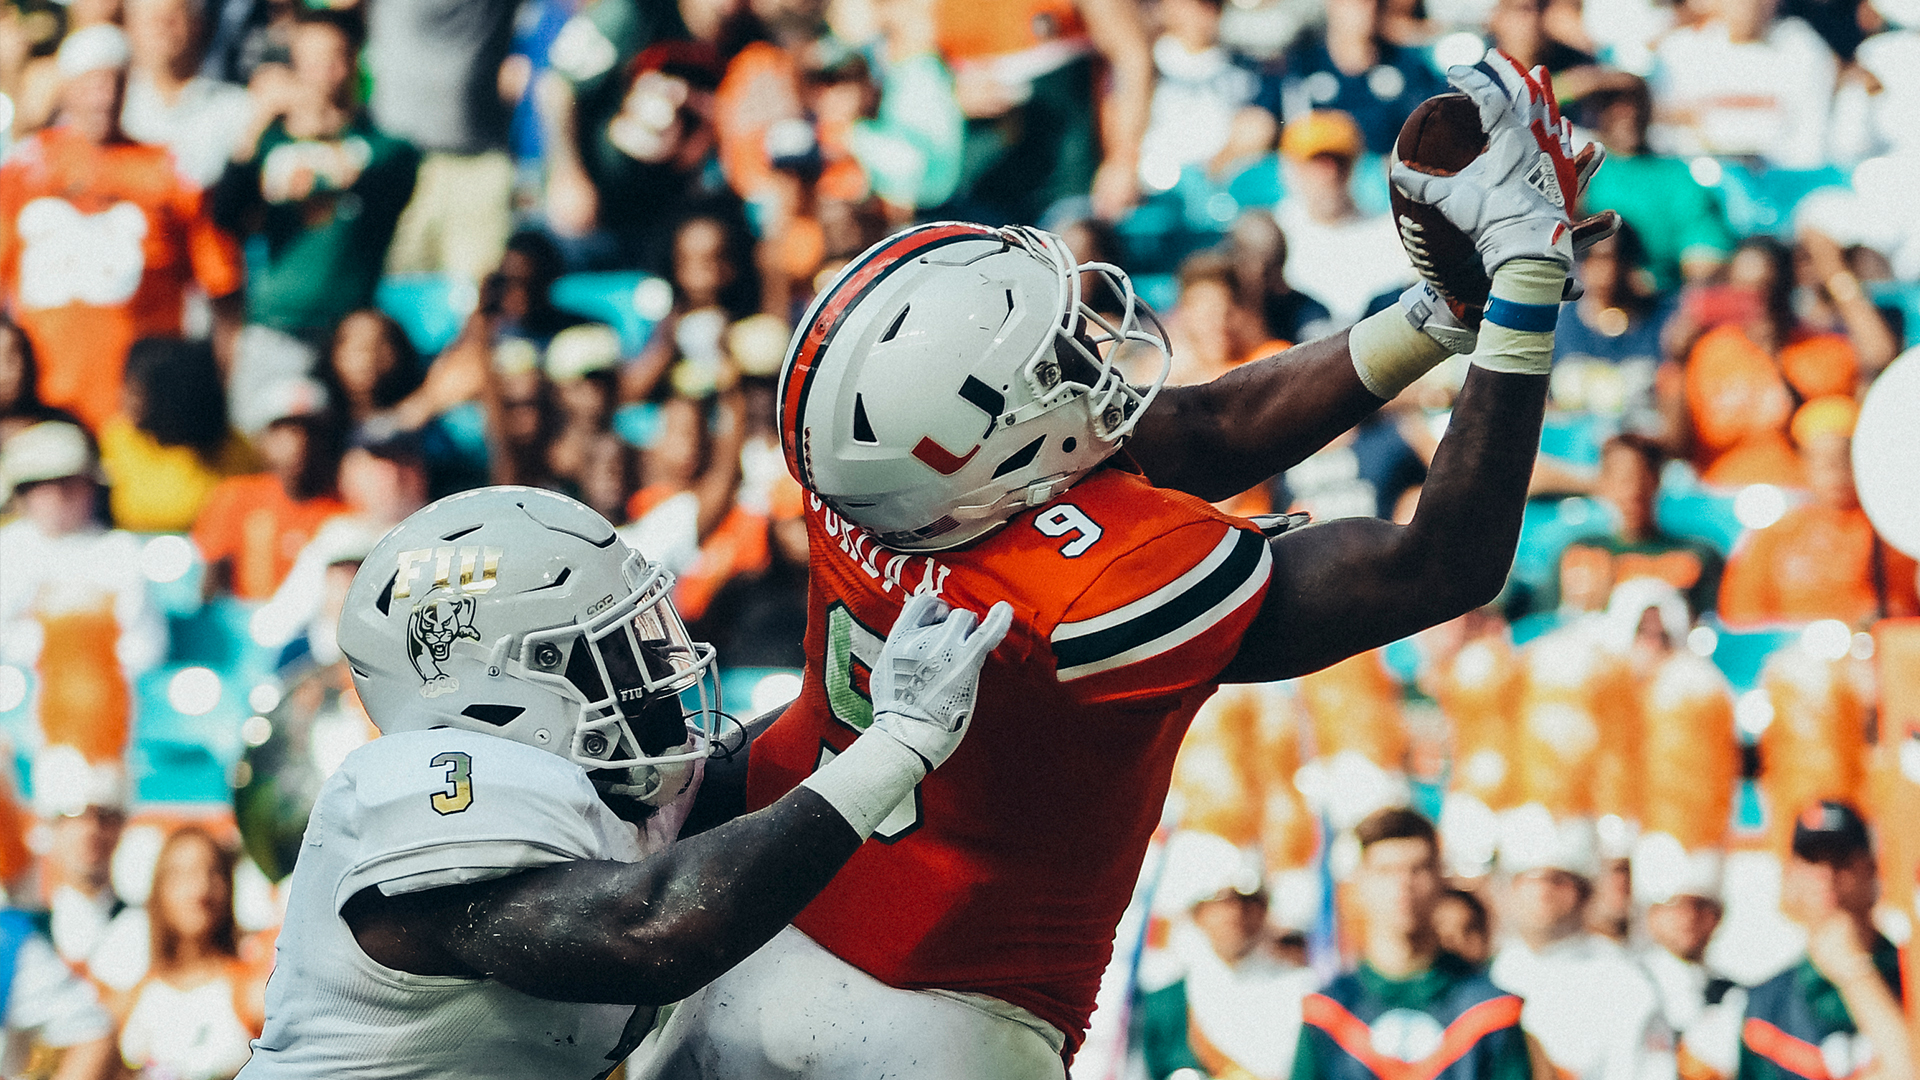 Miami football team hopes to utilize tight finishes more